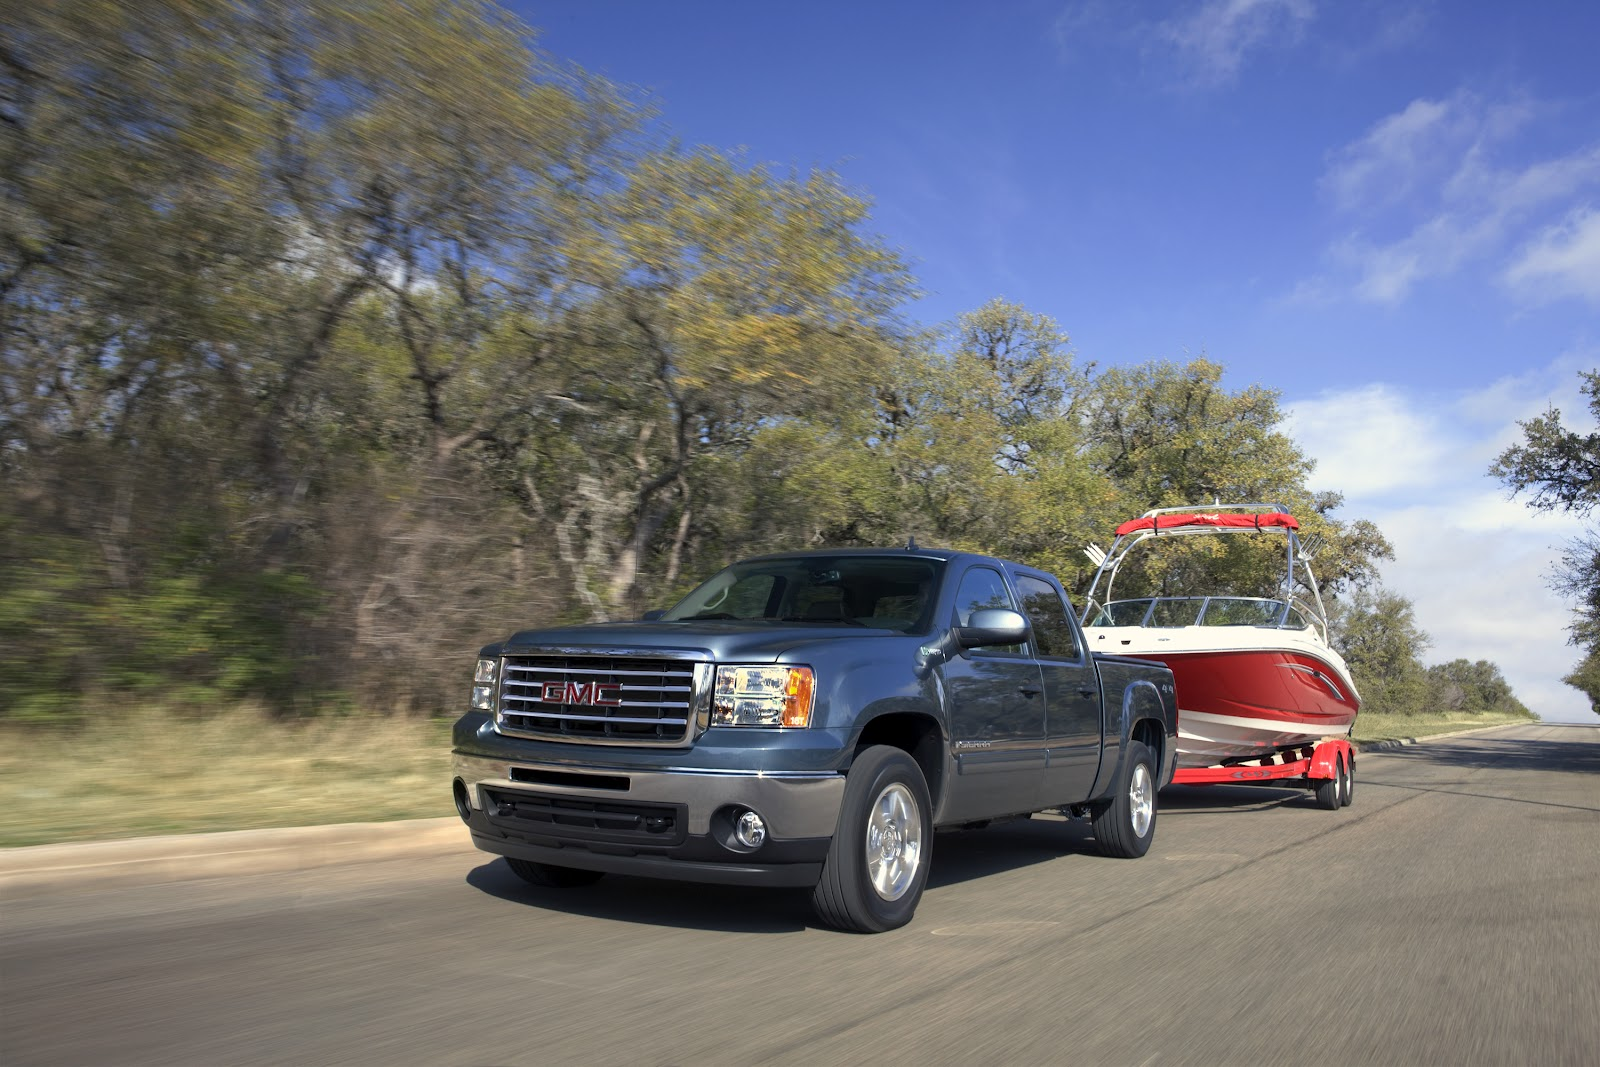 Towing your Boat or Trailer